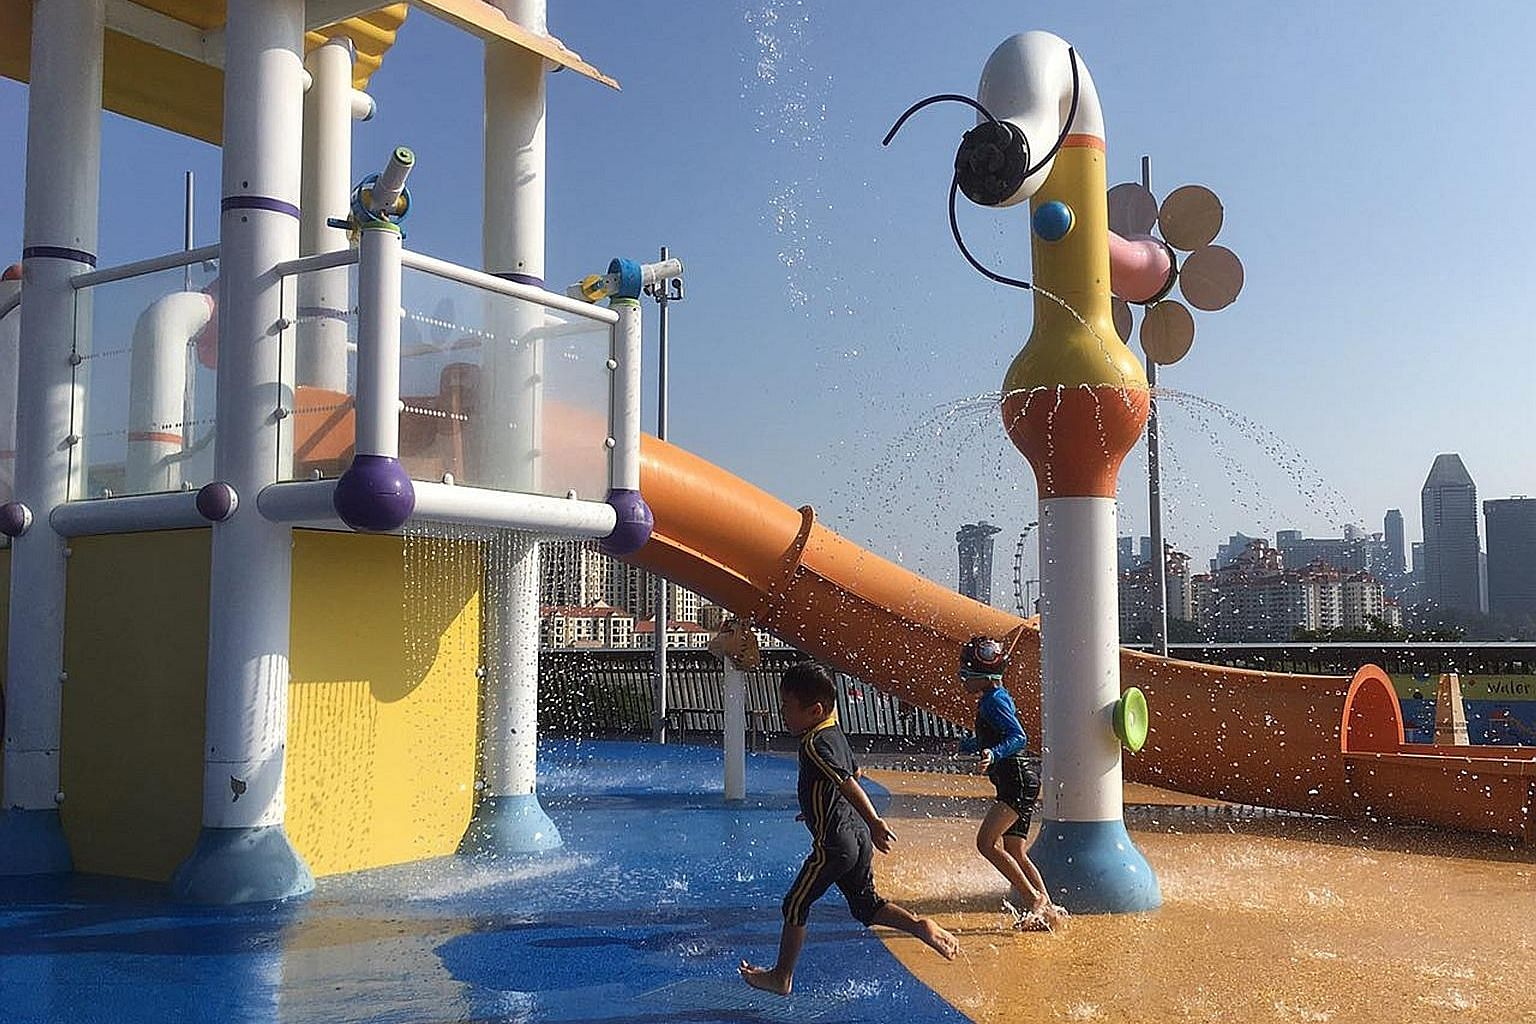 Above: Children cooling off at the water play area of the Singapore Sports Hub yesterday. Left: A tourist trying to keep cool in the searing heat in Chinatown yesterday.